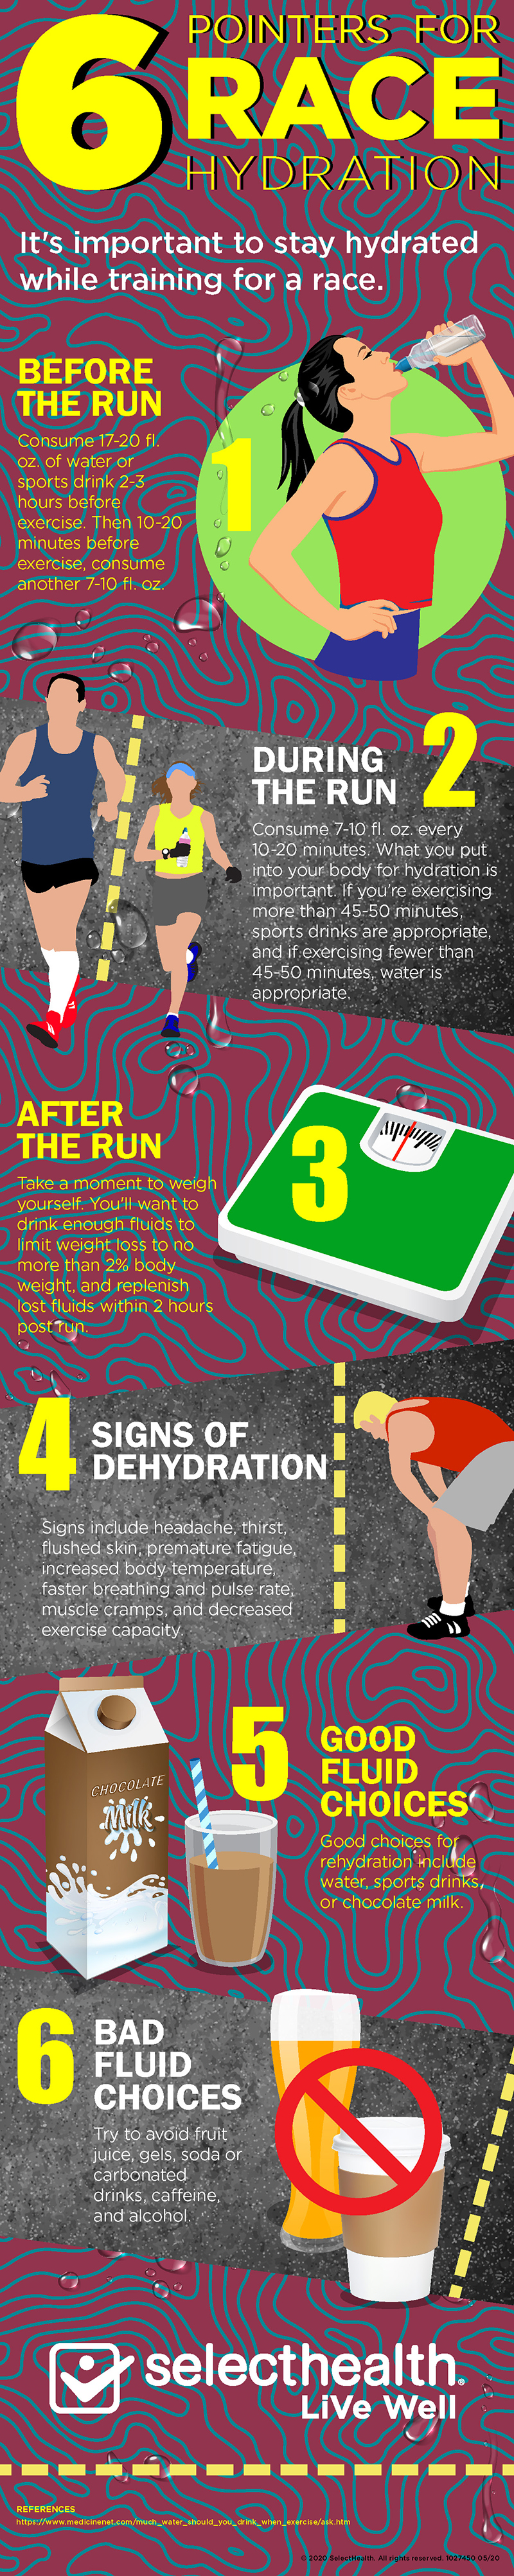 Infographic illustrating how to properly hydrate for a run or race